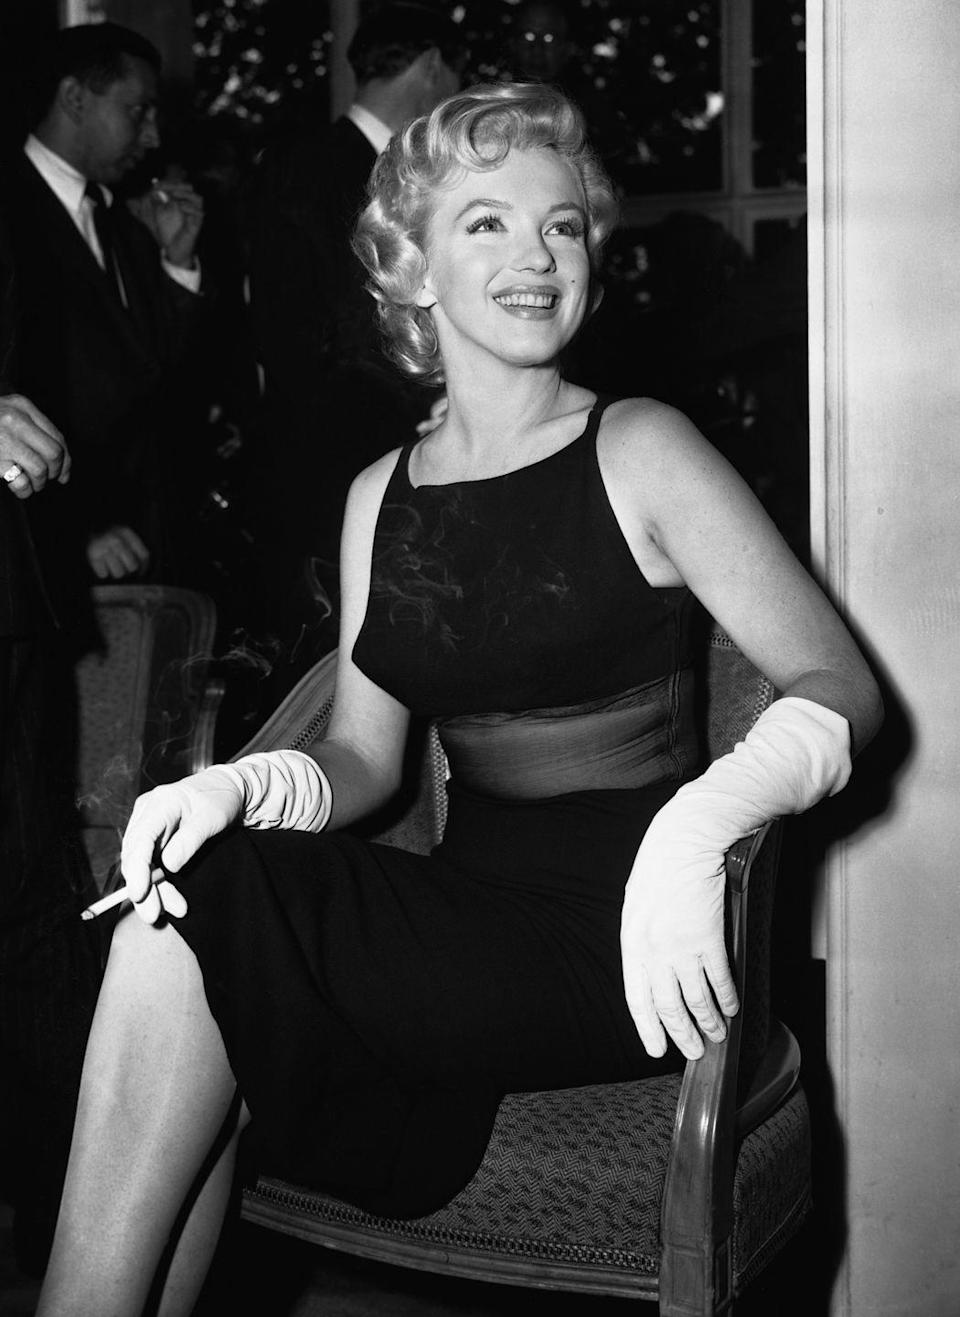 """<p>Marilyn was signed to star in <a href=""""https://www.amazon.com/Prince-Showgirl-Marilyn-Monroe/dp/B006SA5XJO/ref=sr_1_1?keywords=the+prince+and+the+showgirl&qid=1562955822&s=gateway&sr=8-1&tag=syn-yahoo-20&ascsubtag=%5Bartid%7C10050.g.28612852%5Bsrc%7Cyahoo-us"""" rel=""""nofollow noopener"""" target=""""_blank"""" data-ylk=""""slk:The Prince and the Showgirl"""" class=""""link rapid-noclick-resp""""><em>The Prince and the Showgirl</em></a> (1957) with Laurence Olivier, who also directed and produced the film. Unfortunately, her erratic behavior on set caused tension with the cast and crew. The film received mixed reviews. </p>"""